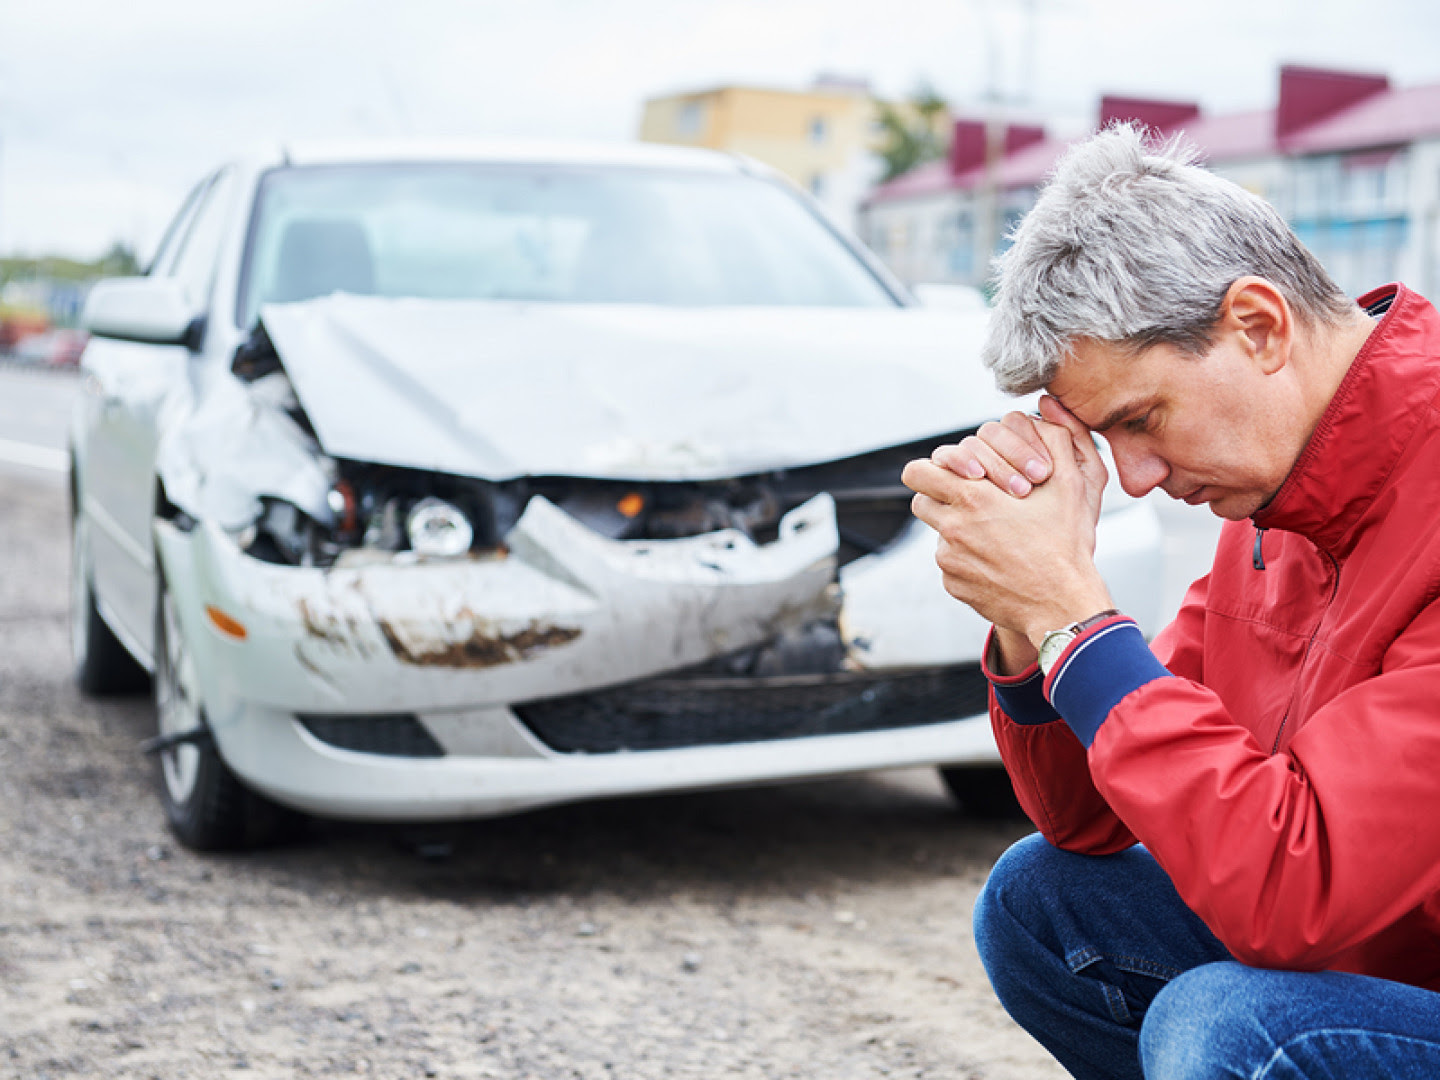 Auto Accident Injury Lawyer - Myrtle Beach, SC   Harwell Law Firm, P.A.